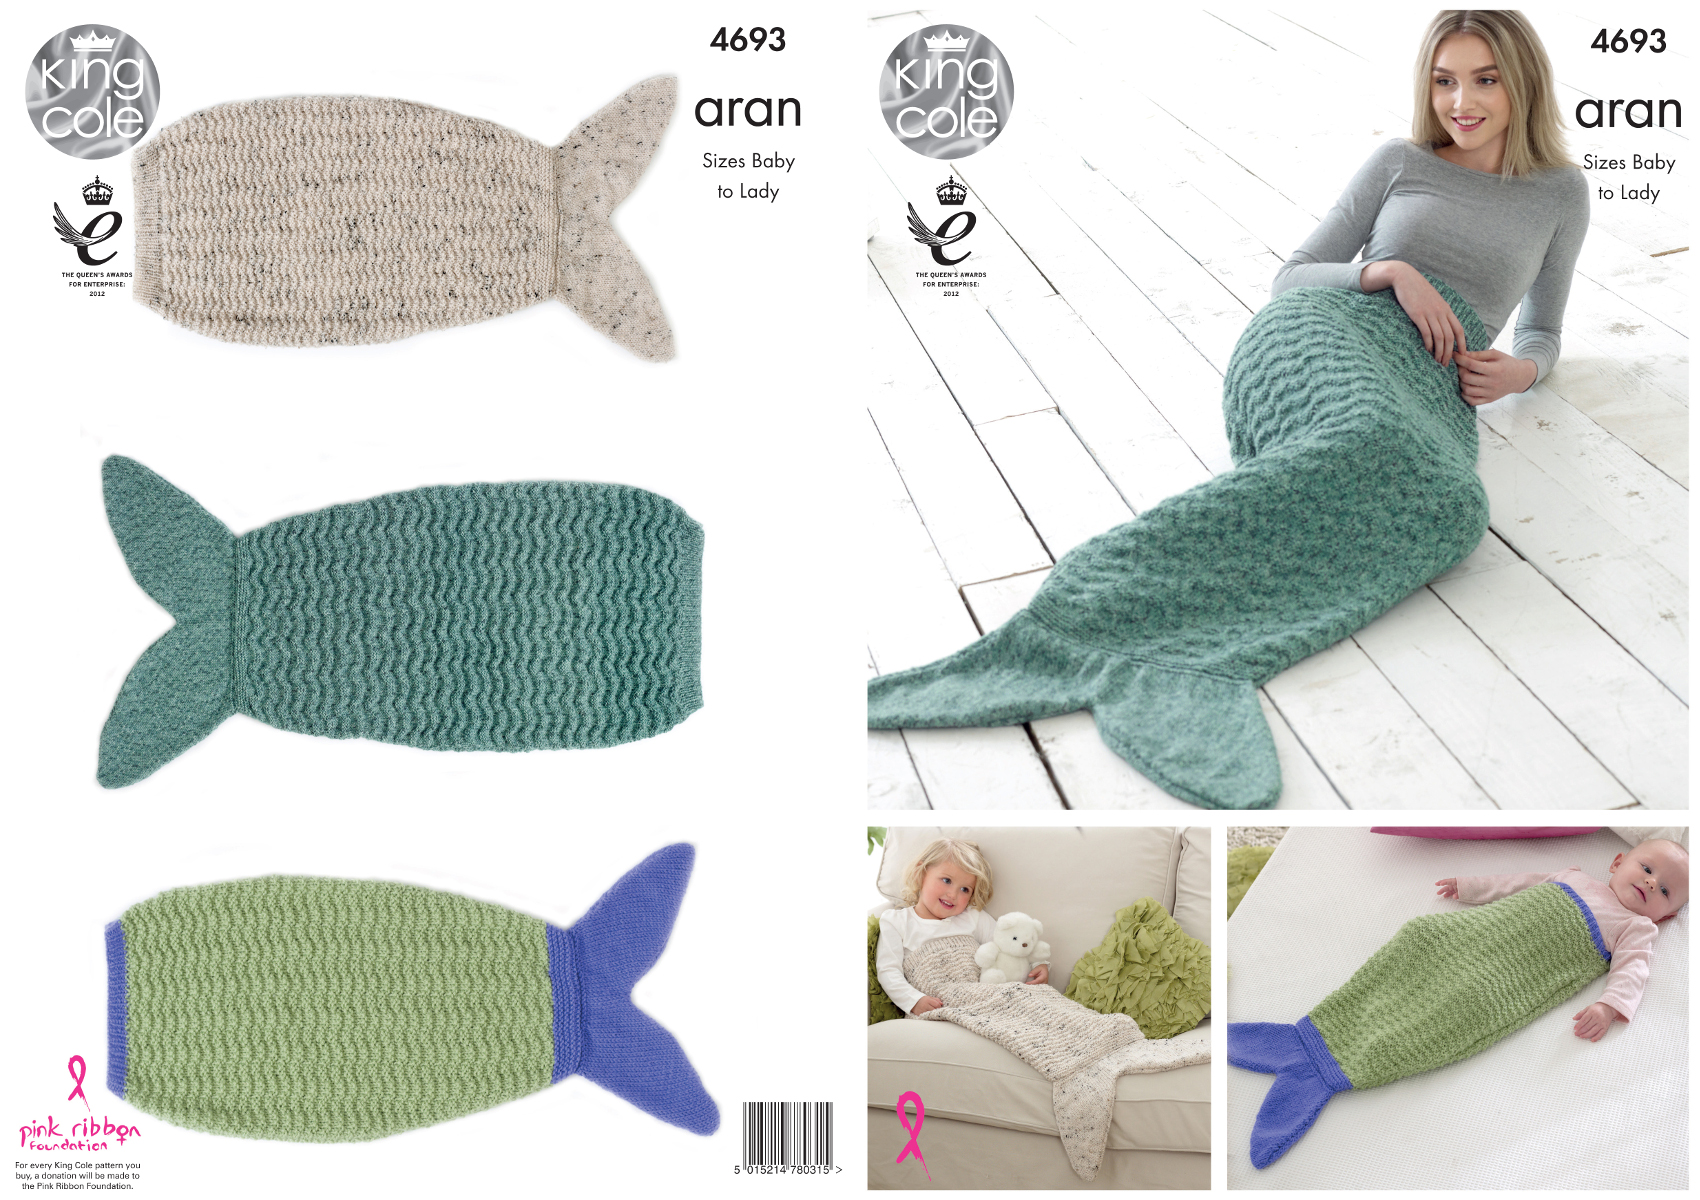 King Cole Aran Knitting Pattern Ladies Kids Babies Mermaid Tail